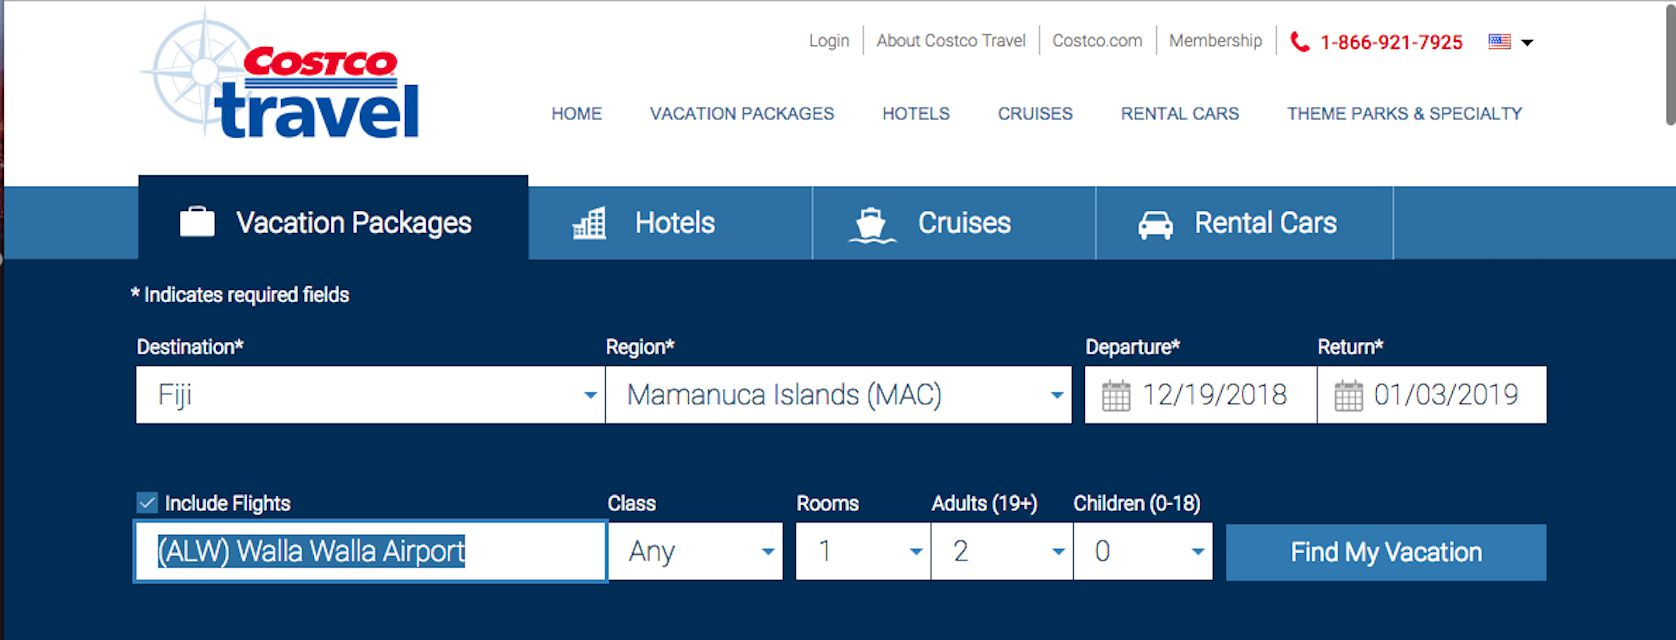 Costco Travel's vacation package selector tool.